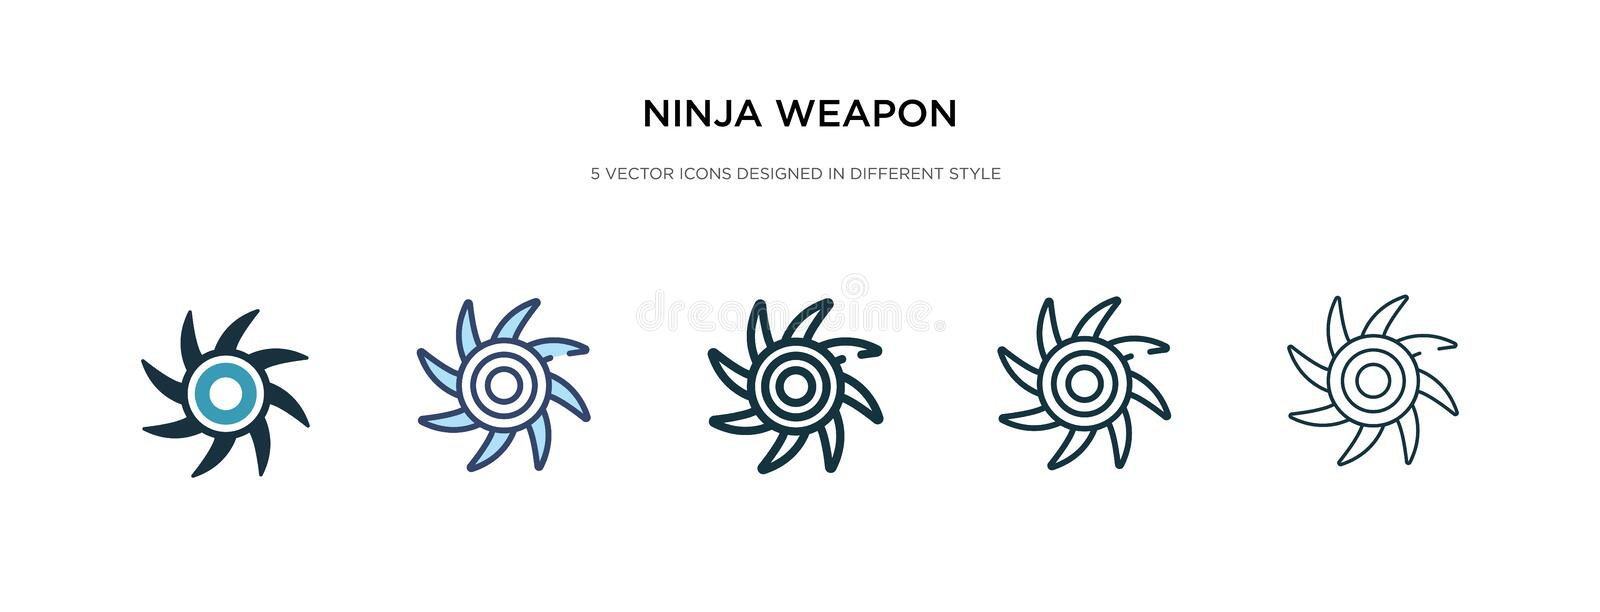 Ninja weapon icon in different style vector illustration. two colored and black ninja weapon vector icons designed in filled, stock illustration